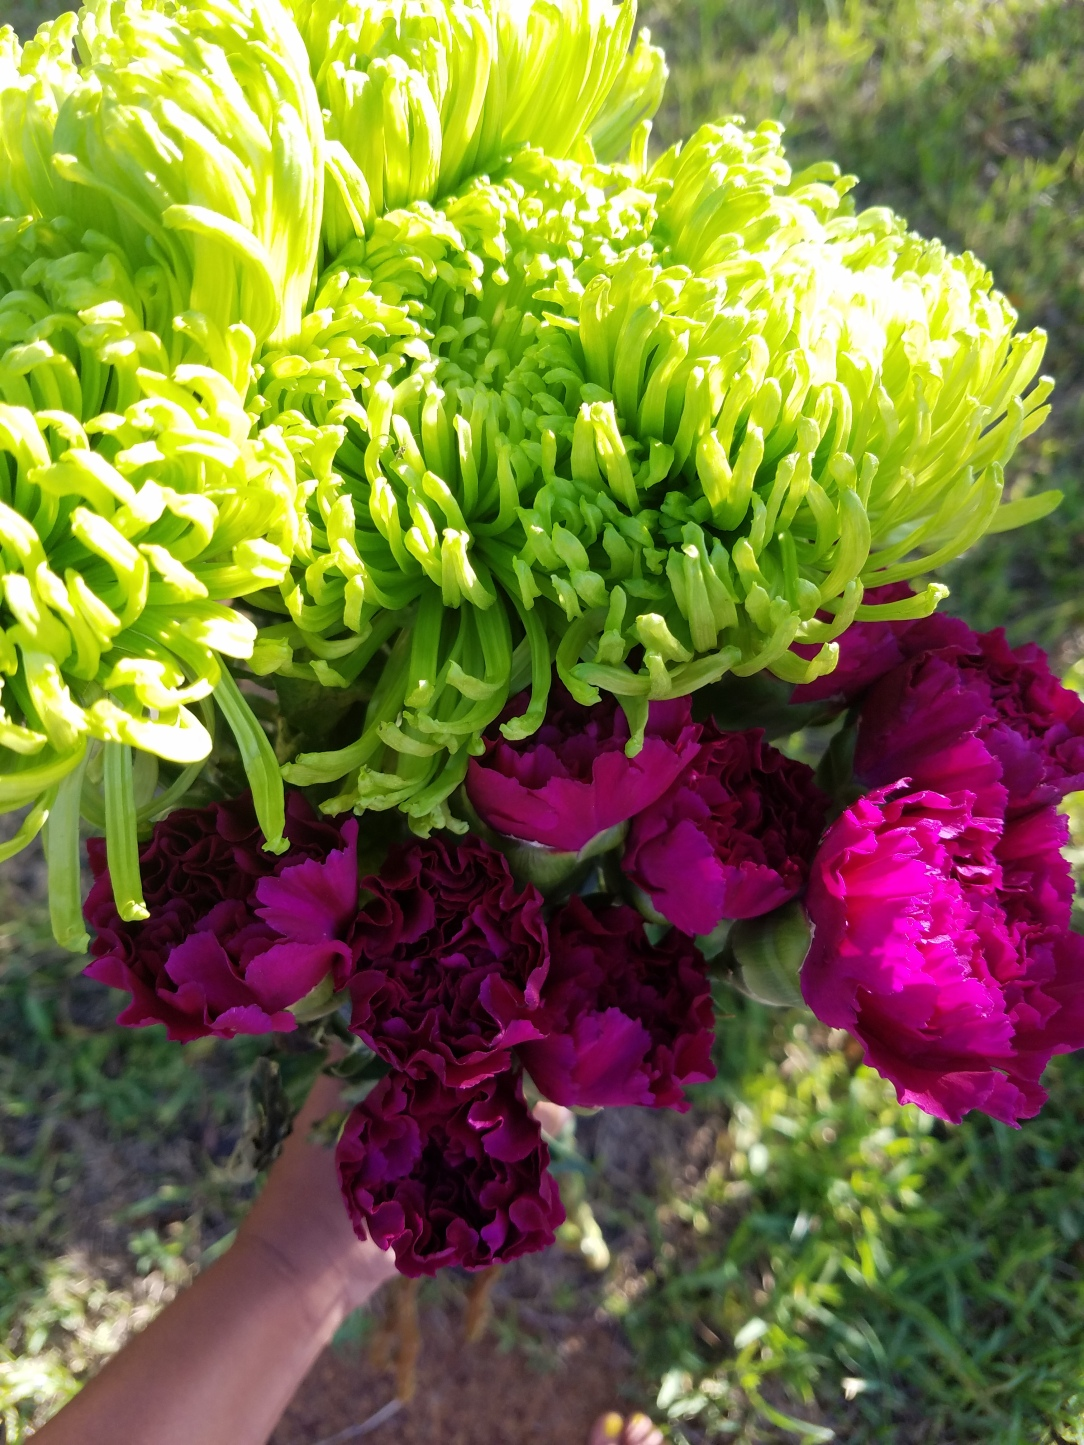 Jumbo green mums and pink carnations